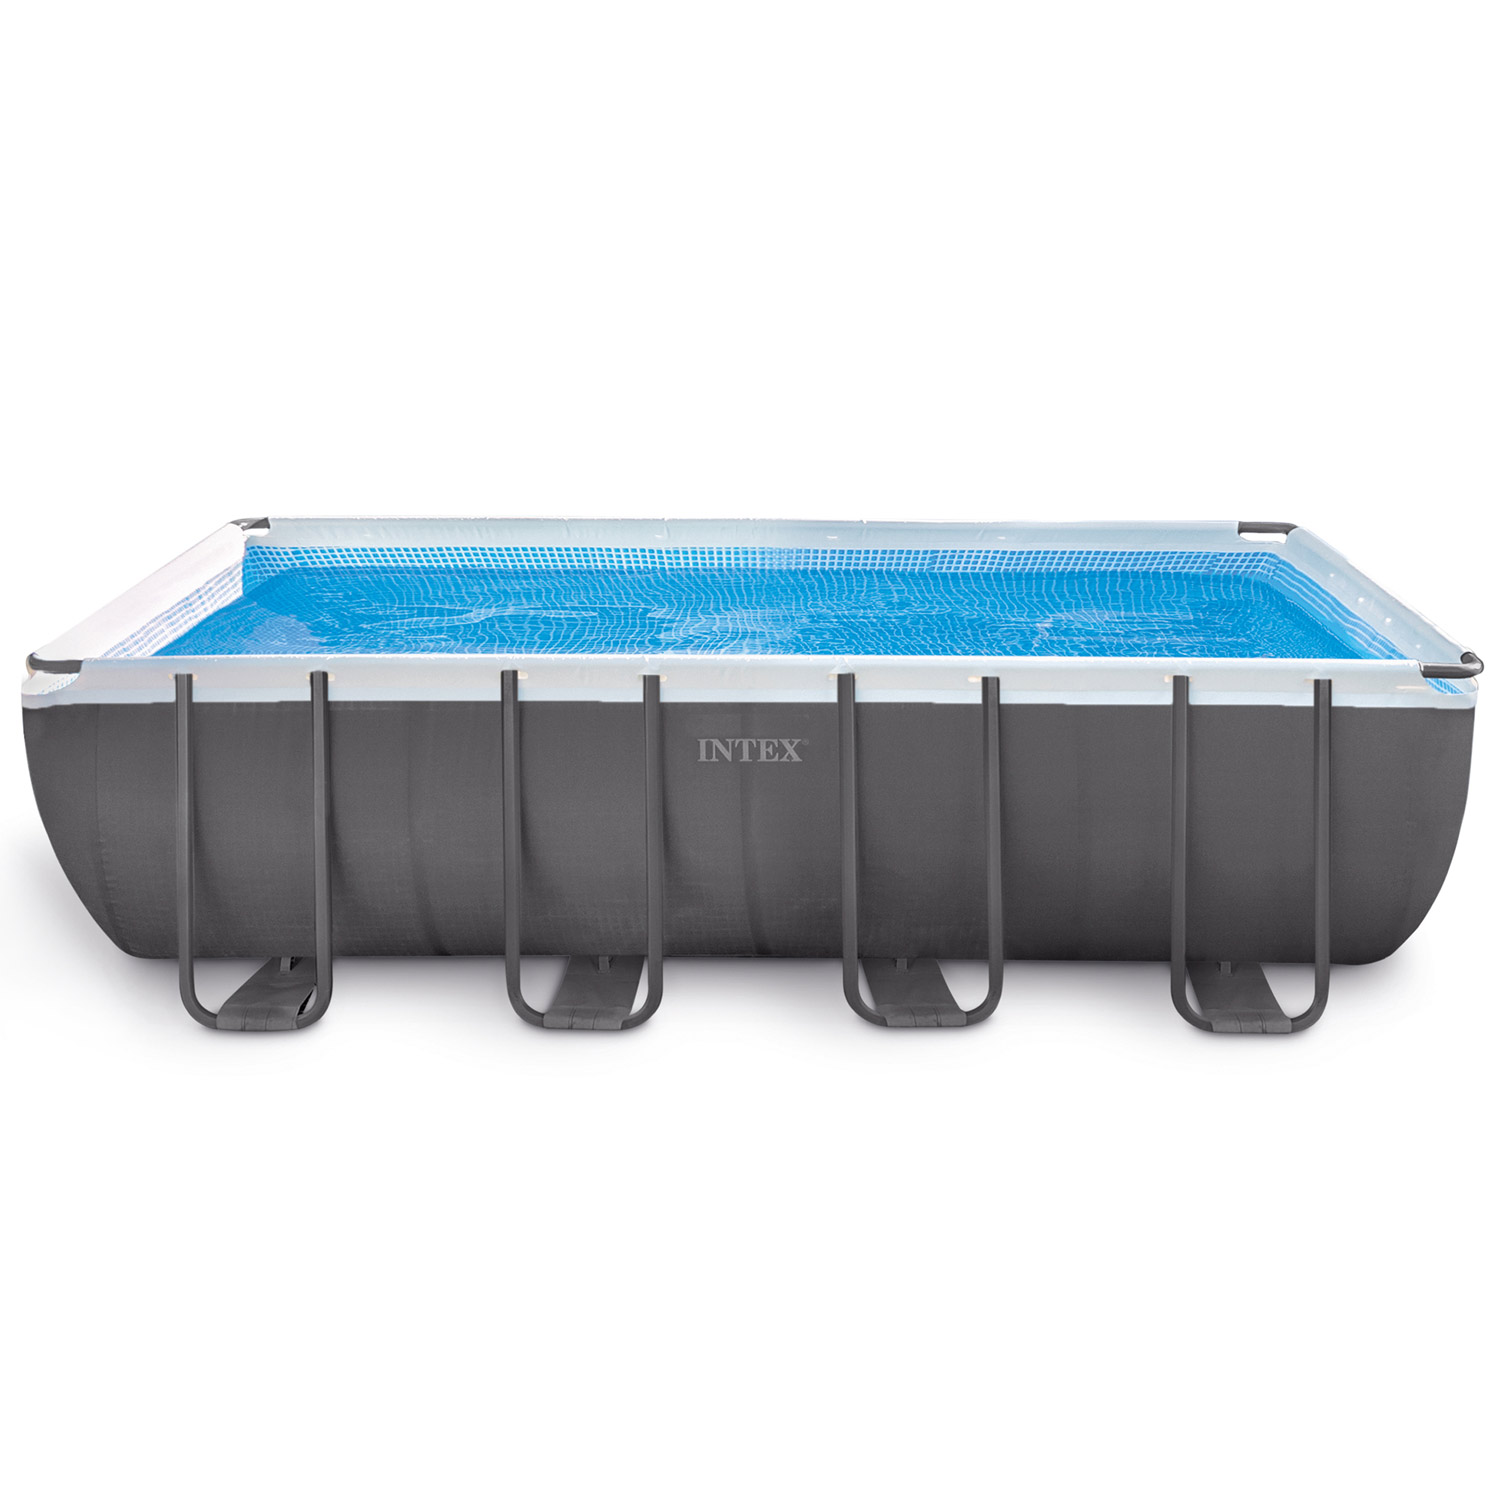 Intex 549x274x132 swimming pool set rechteck stahlwand for Swimmingpool stahl